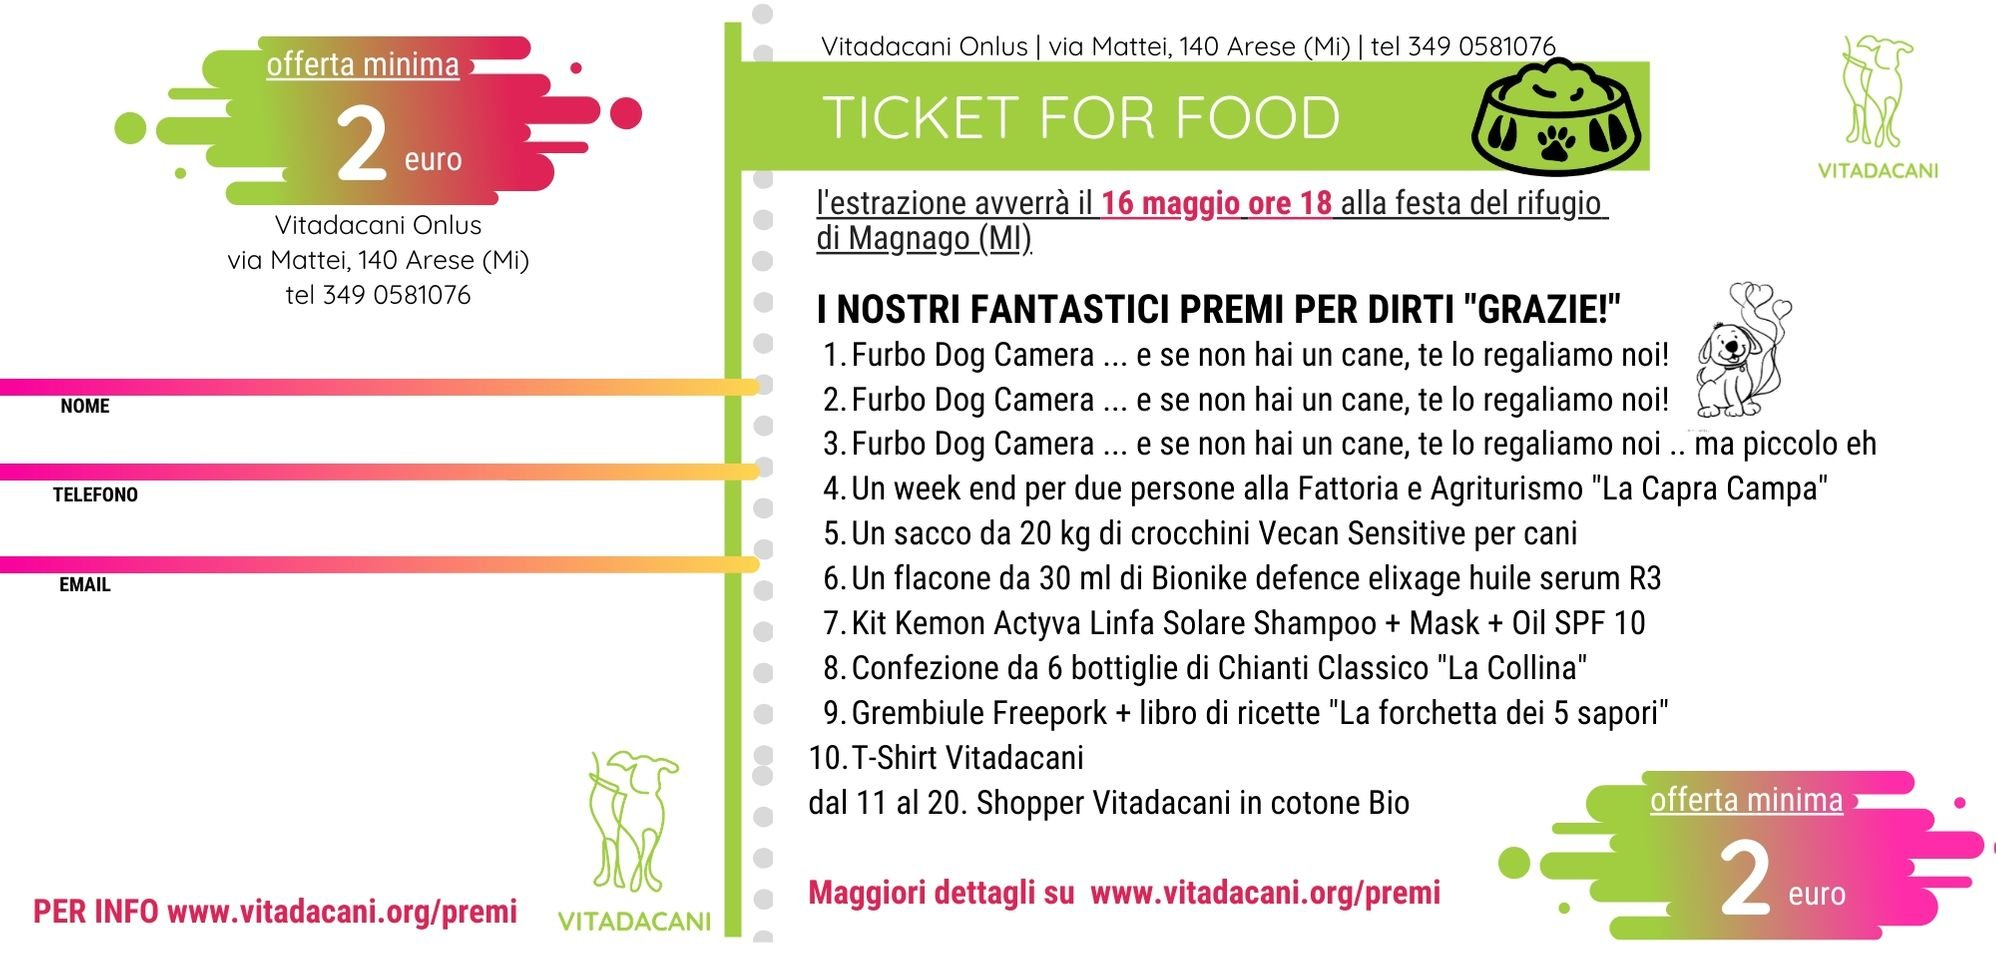 Ticket for Food